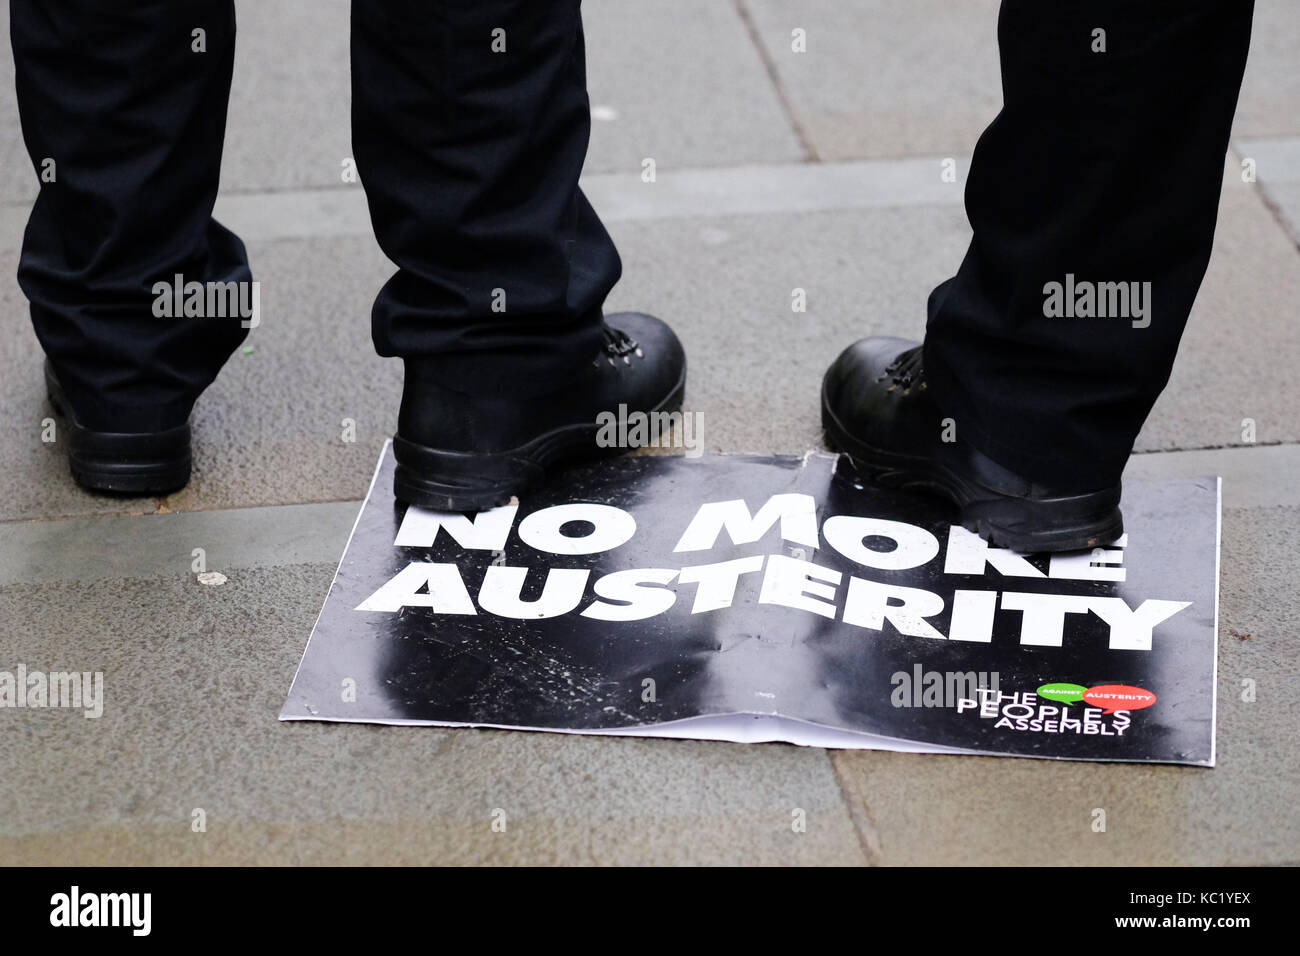 St Peters Square, Manchester, UK - Sunday 1st October 2017 - Police officers stand on a discarded No More Austerity - Stock Image